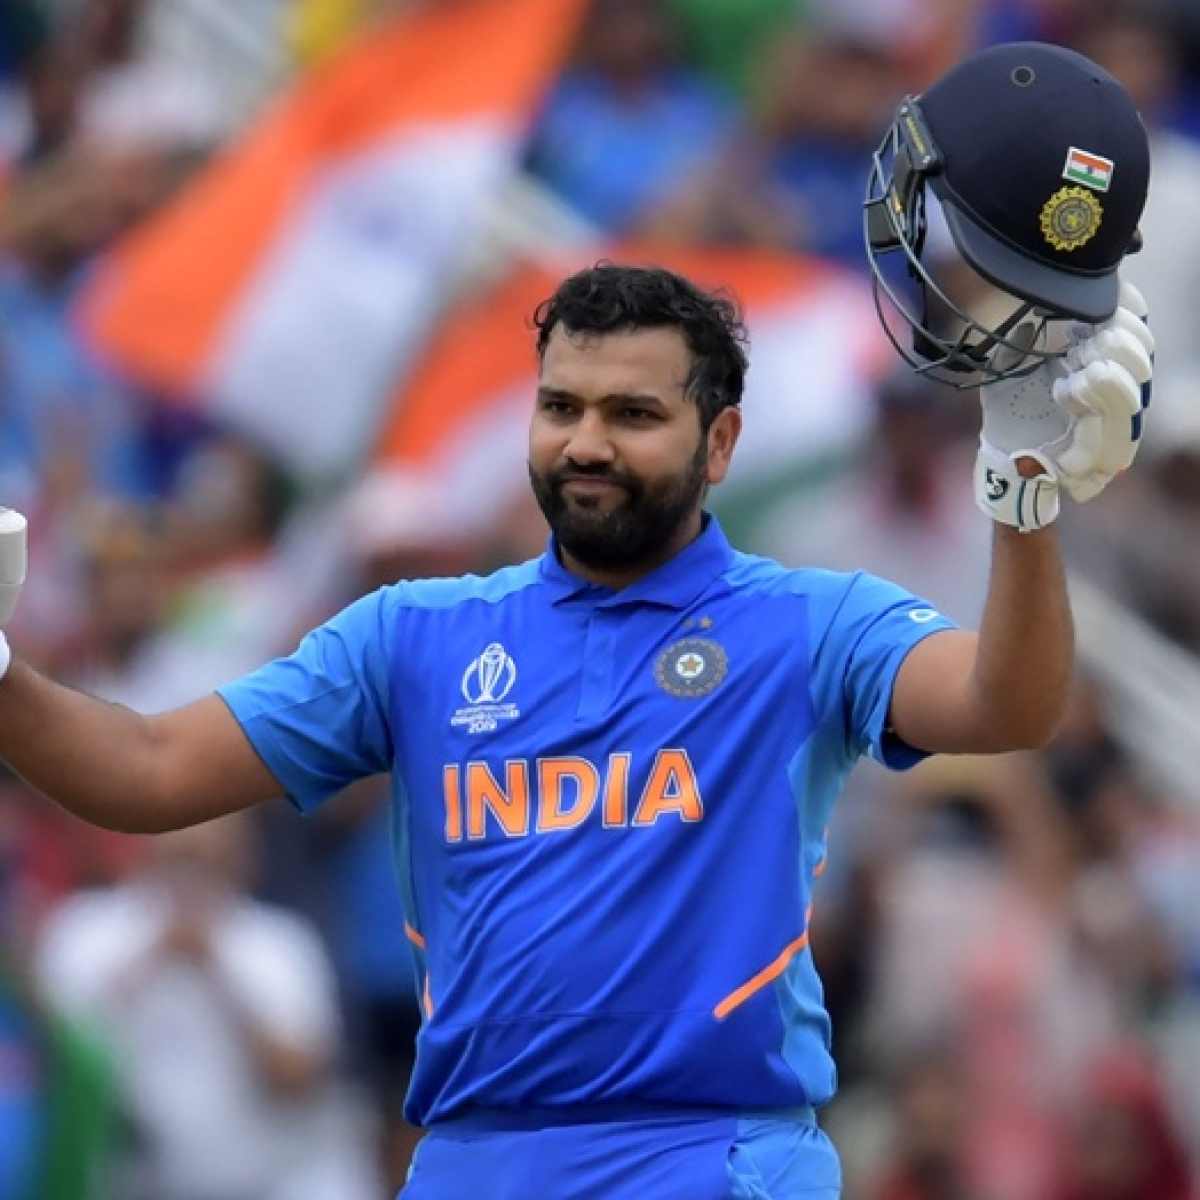 Rohit Sharma puts nation ahead of team, says 'I walk out for my country, not just the team'